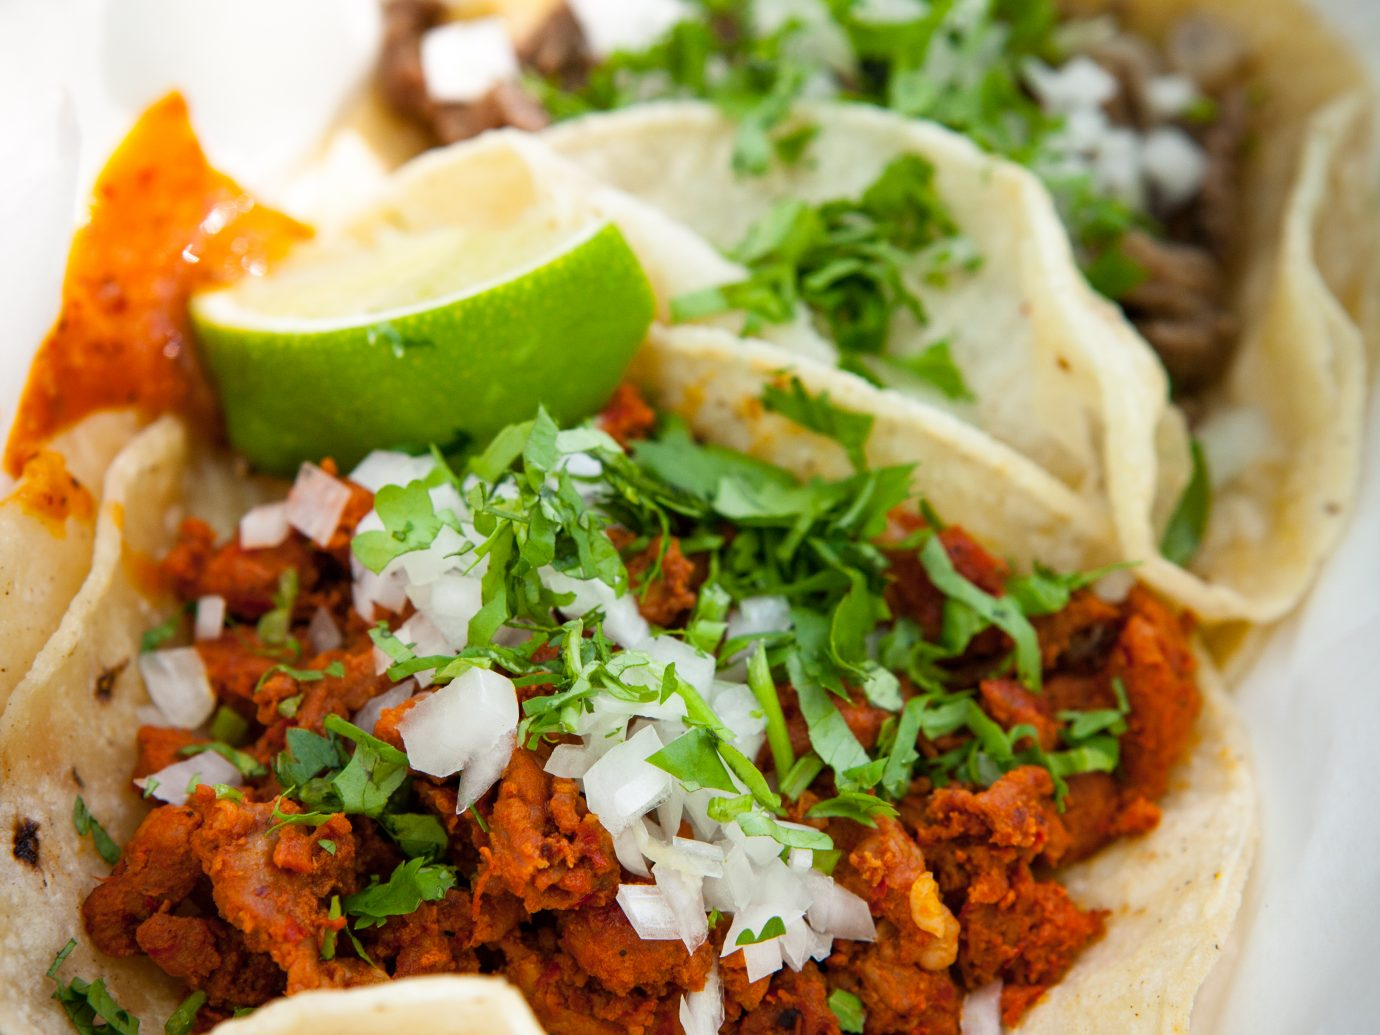 Beef and chorizo tacos